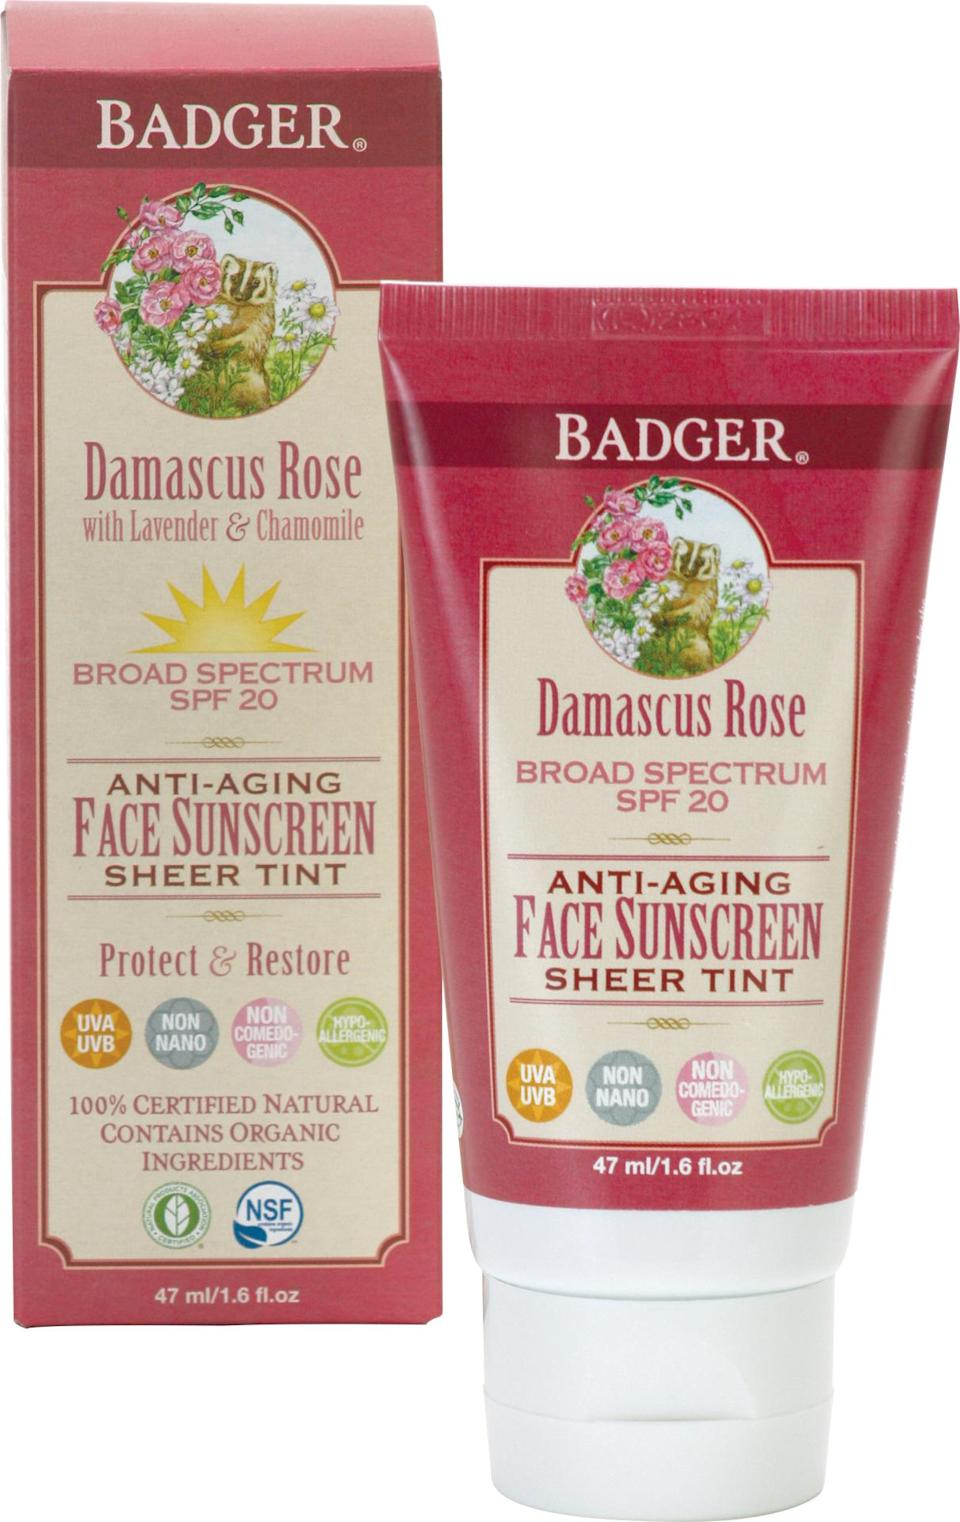 """<p><b>Active Ingredients:</b> 12% Zinc Oxide <br>With each product ranging from 87 to 98% certified organic, Badger products are ultra pure. The sunscreens pair zinc oxide with plant oils, Vitamin E, and aloe. They are also biodegradable, won't erode coral reefs, and hold up to active days of swim and sport. The only downside is that the very thick formulas can leave a bit of a whitish cast. However, their new Rose Tinted sunscreen offers an invisible matte finish. The non-comedogenic, non-nano formula is a perfect sunscreen for daily use, even underneath makeup.<br><br><a href=""""http://www.badgerbalm.com/p-566-spf-20-rose-tinted-face-sunscreen.aspx"""" rel=""""nofollow noopener"""" target=""""_blank"""" data-ylk=""""slk:Badger SPF 20 Rose Tinted Sunscreen"""" class=""""link rapid-noclick-resp"""">Badger SPF 20 Rose Tinted Sunscreen </a>($25)</p>"""